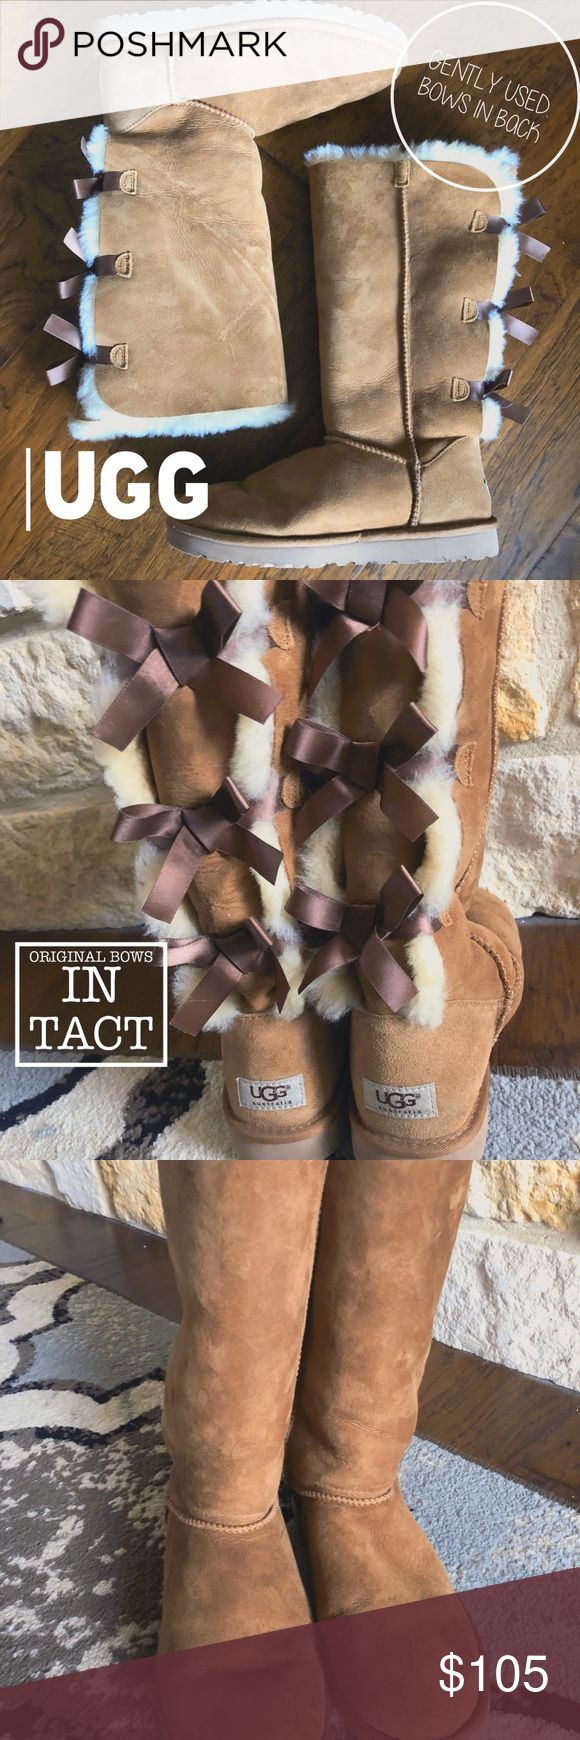 Gently Used Chestnut Ugg Bailey Bow Tall Boots Gently Used! Minimal wear. Original bows in tact.   ✅Offers always welcomed! 💰Bundles get an extra discount! 🔜Ships promptly next postal day! 📦Always packed neatly!  🙅🏻‍♀️No trades or lowballing please! UGG Shoes Winter & Rain Boots